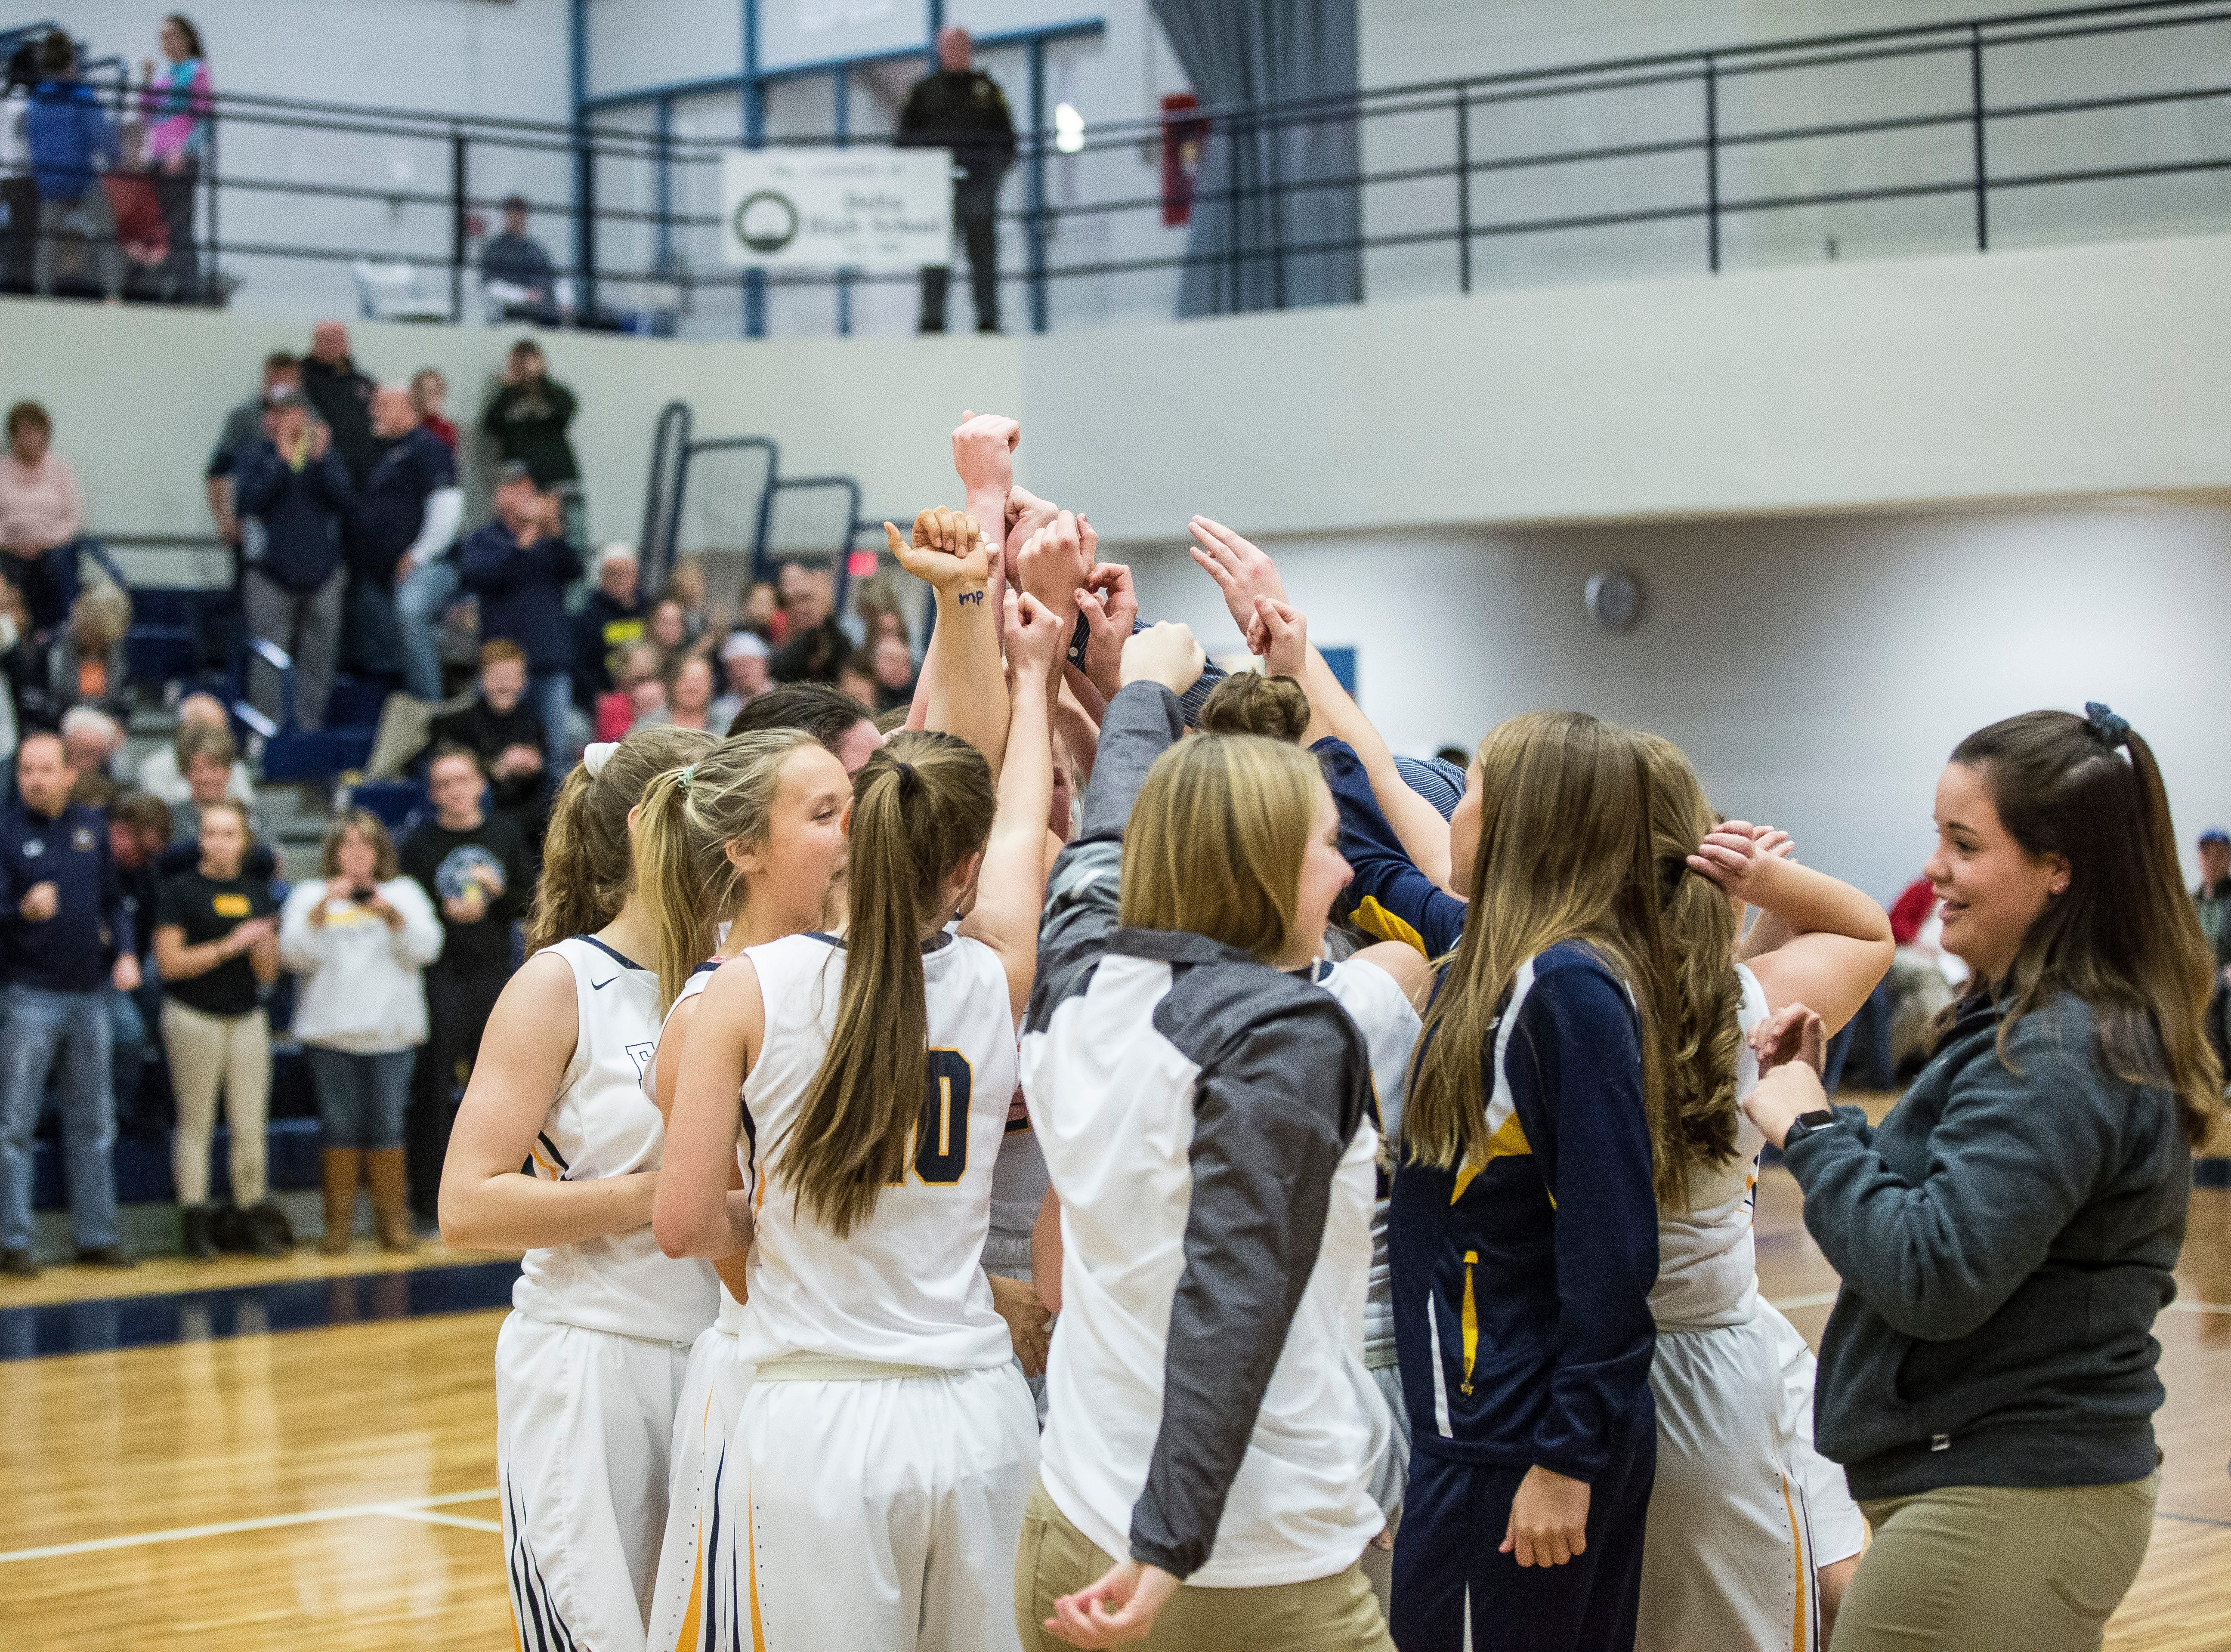 Delta celebrates their tile win against Wapahani Monday evening for the Delaware County Basketball Tournament championship game at Delta High School. Delta won the game 42-32.